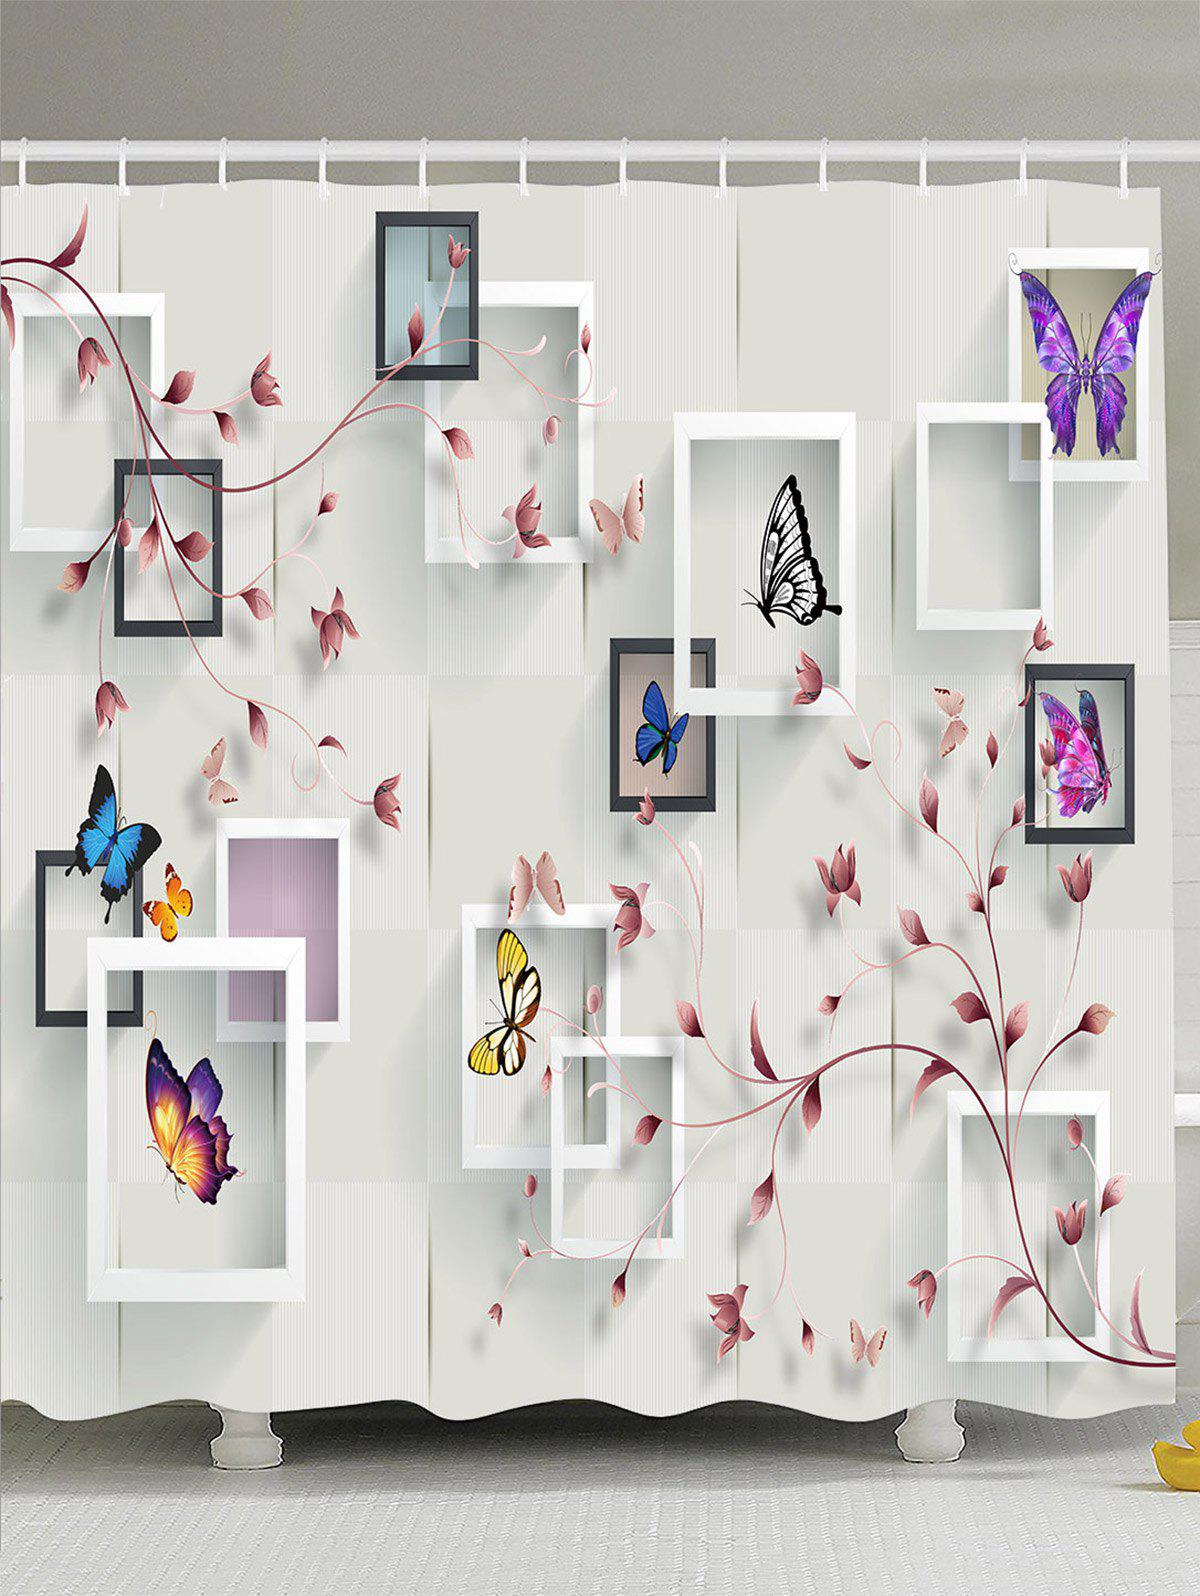 Photo Frame Flower Butterfly Shower Curtain flower butterfly mantis water resistant shower curtain